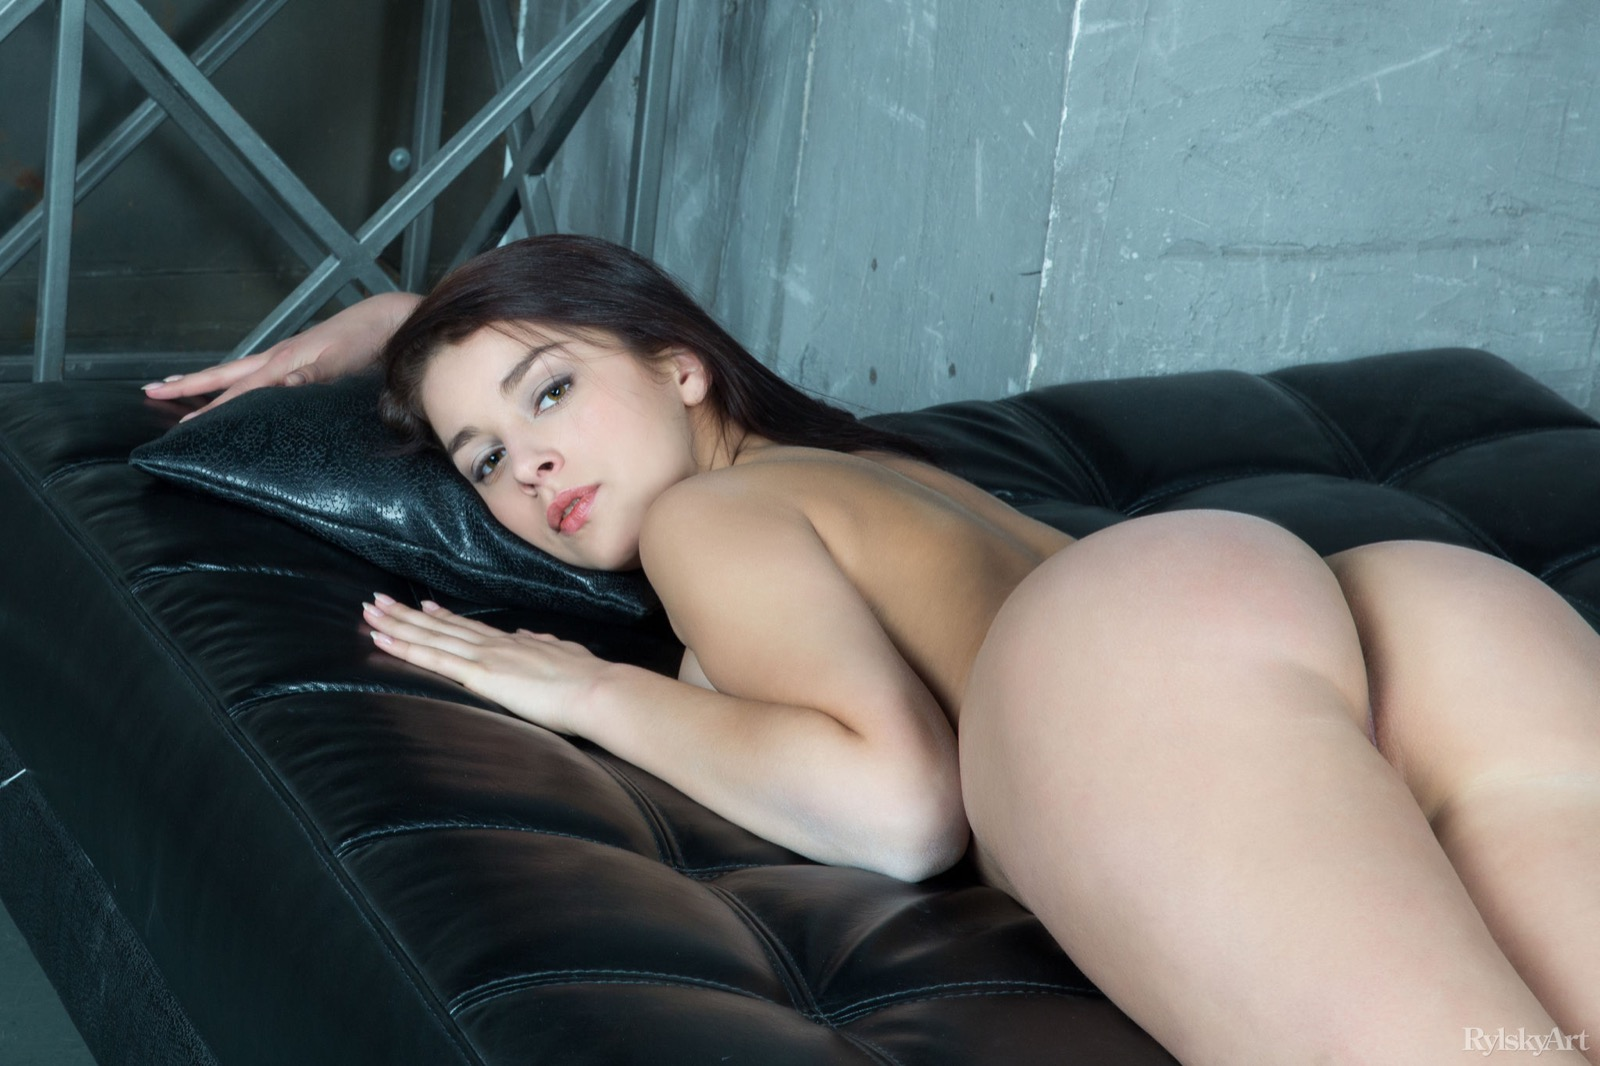 Dream 'cum' shaved pirn pussy pics sexy hell!